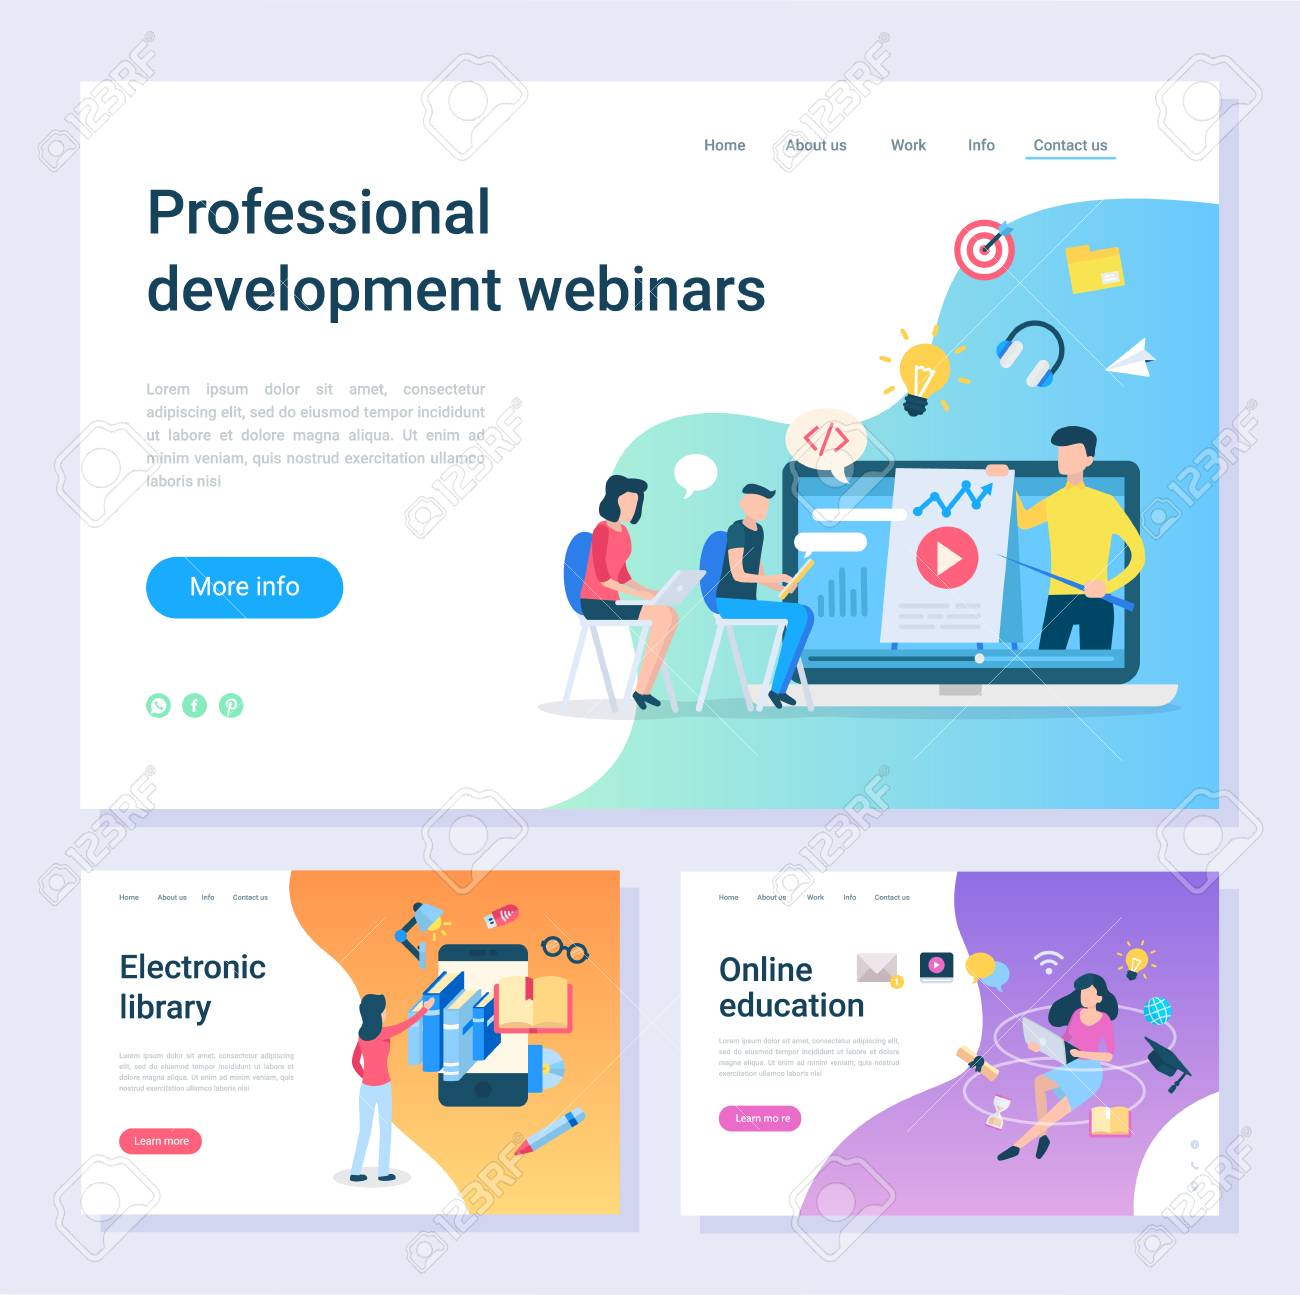 Development webinar, electronic library, online education web pages. Internet learning, programming and information digital source vector illustration - 113720069